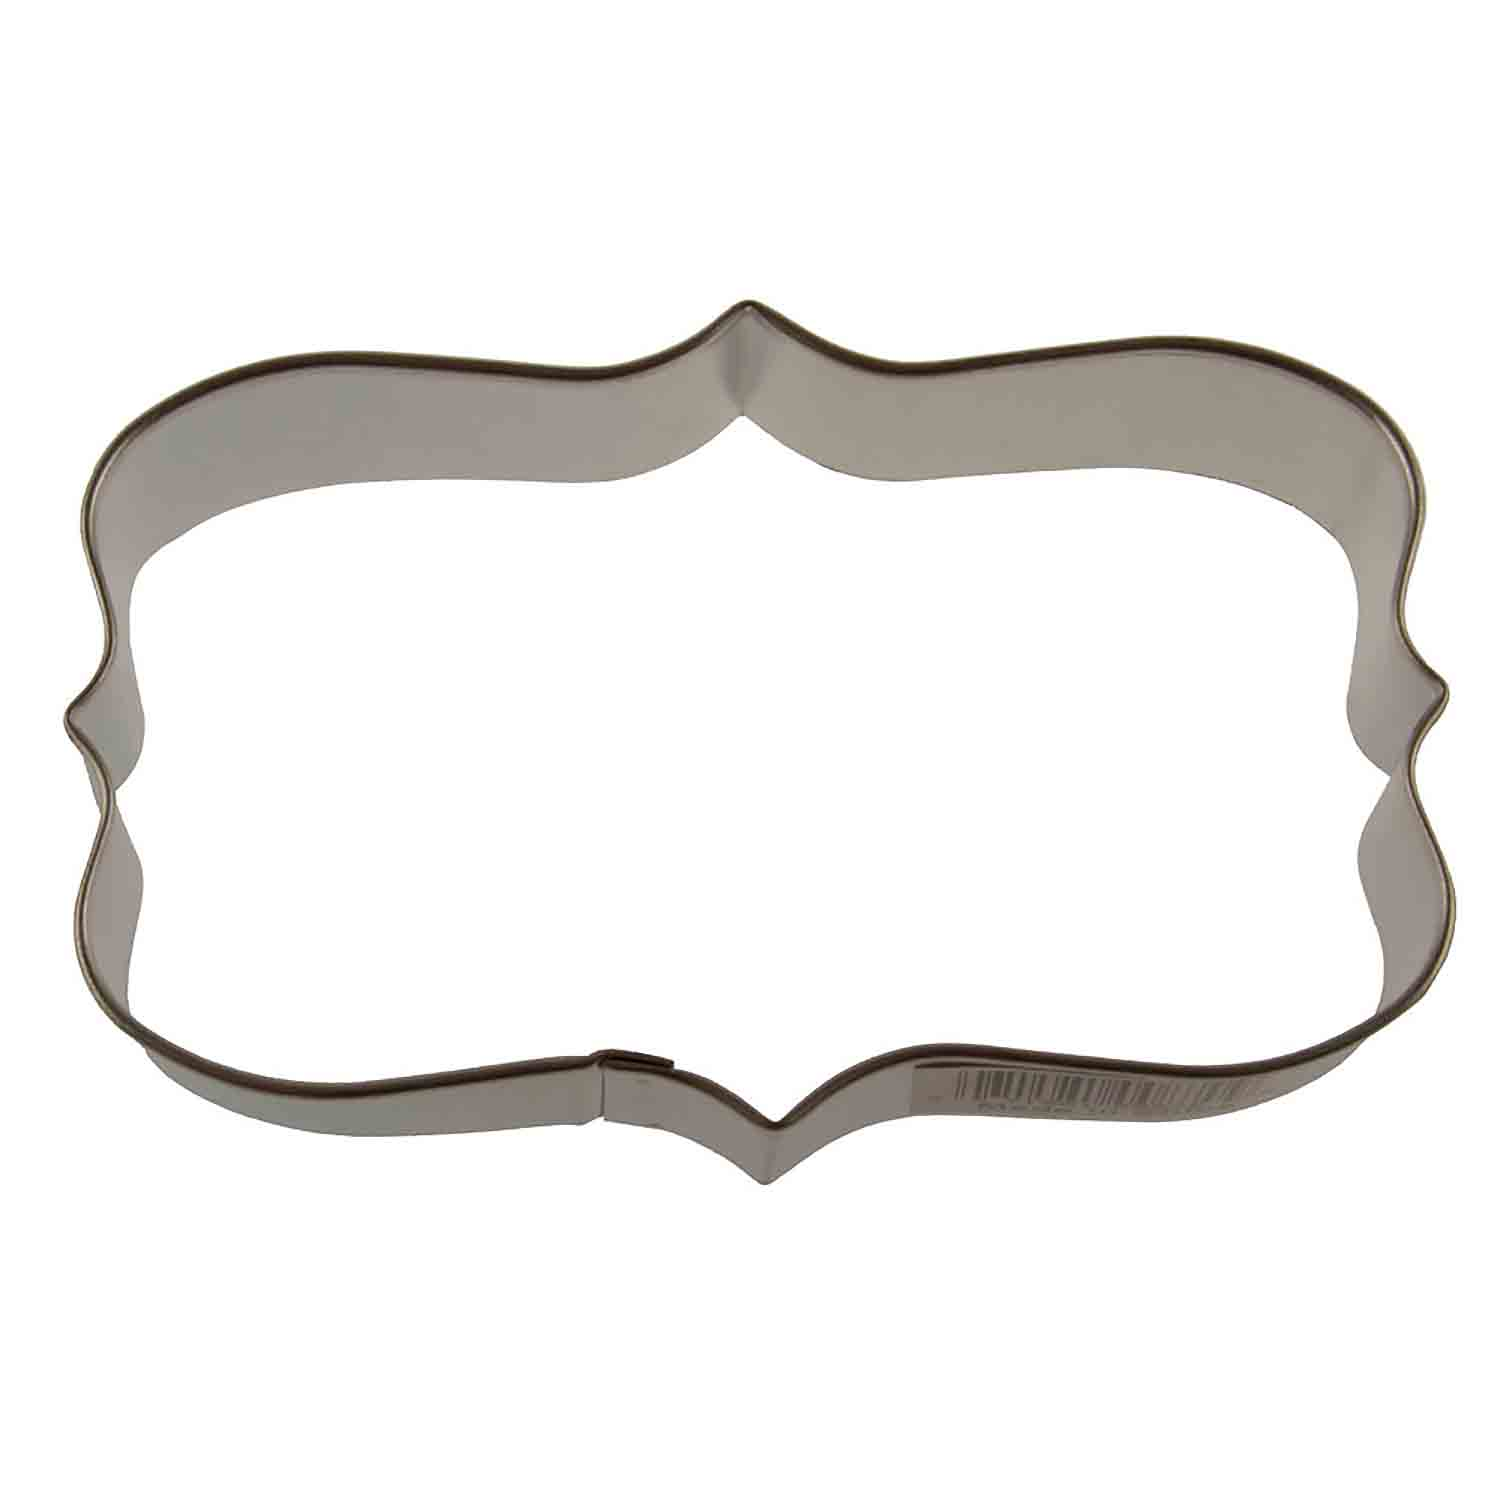 rectangle plaque cookie cutter rm0870 country kitchen